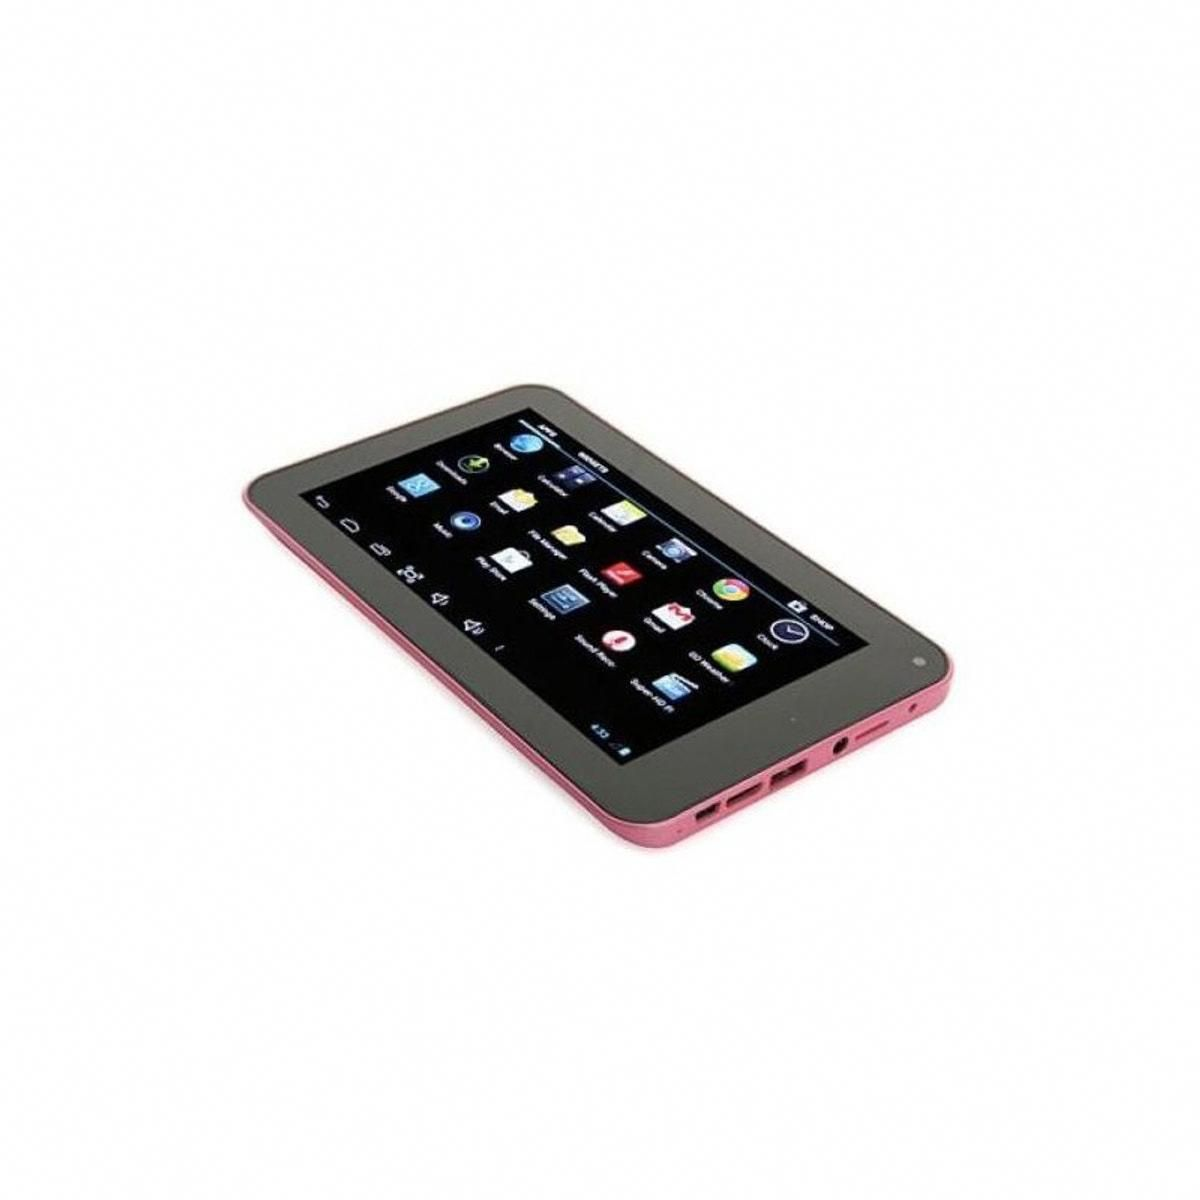 Tablette Tactile Android 4 2 Jelly Bean 7 Pouces Yonis Pearl Rose